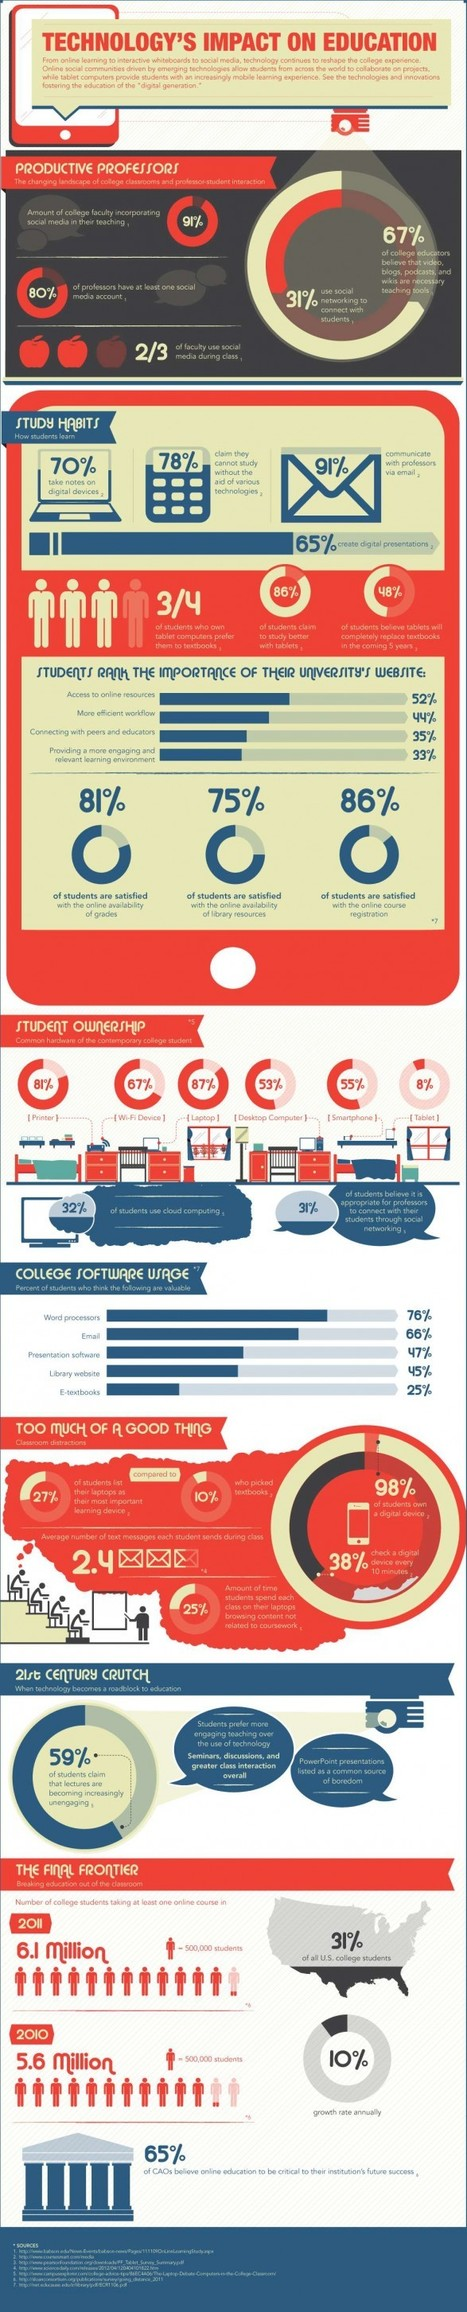 How Technology Has Impacted Education [Infographic] | New Media and Technology | Scoop.it